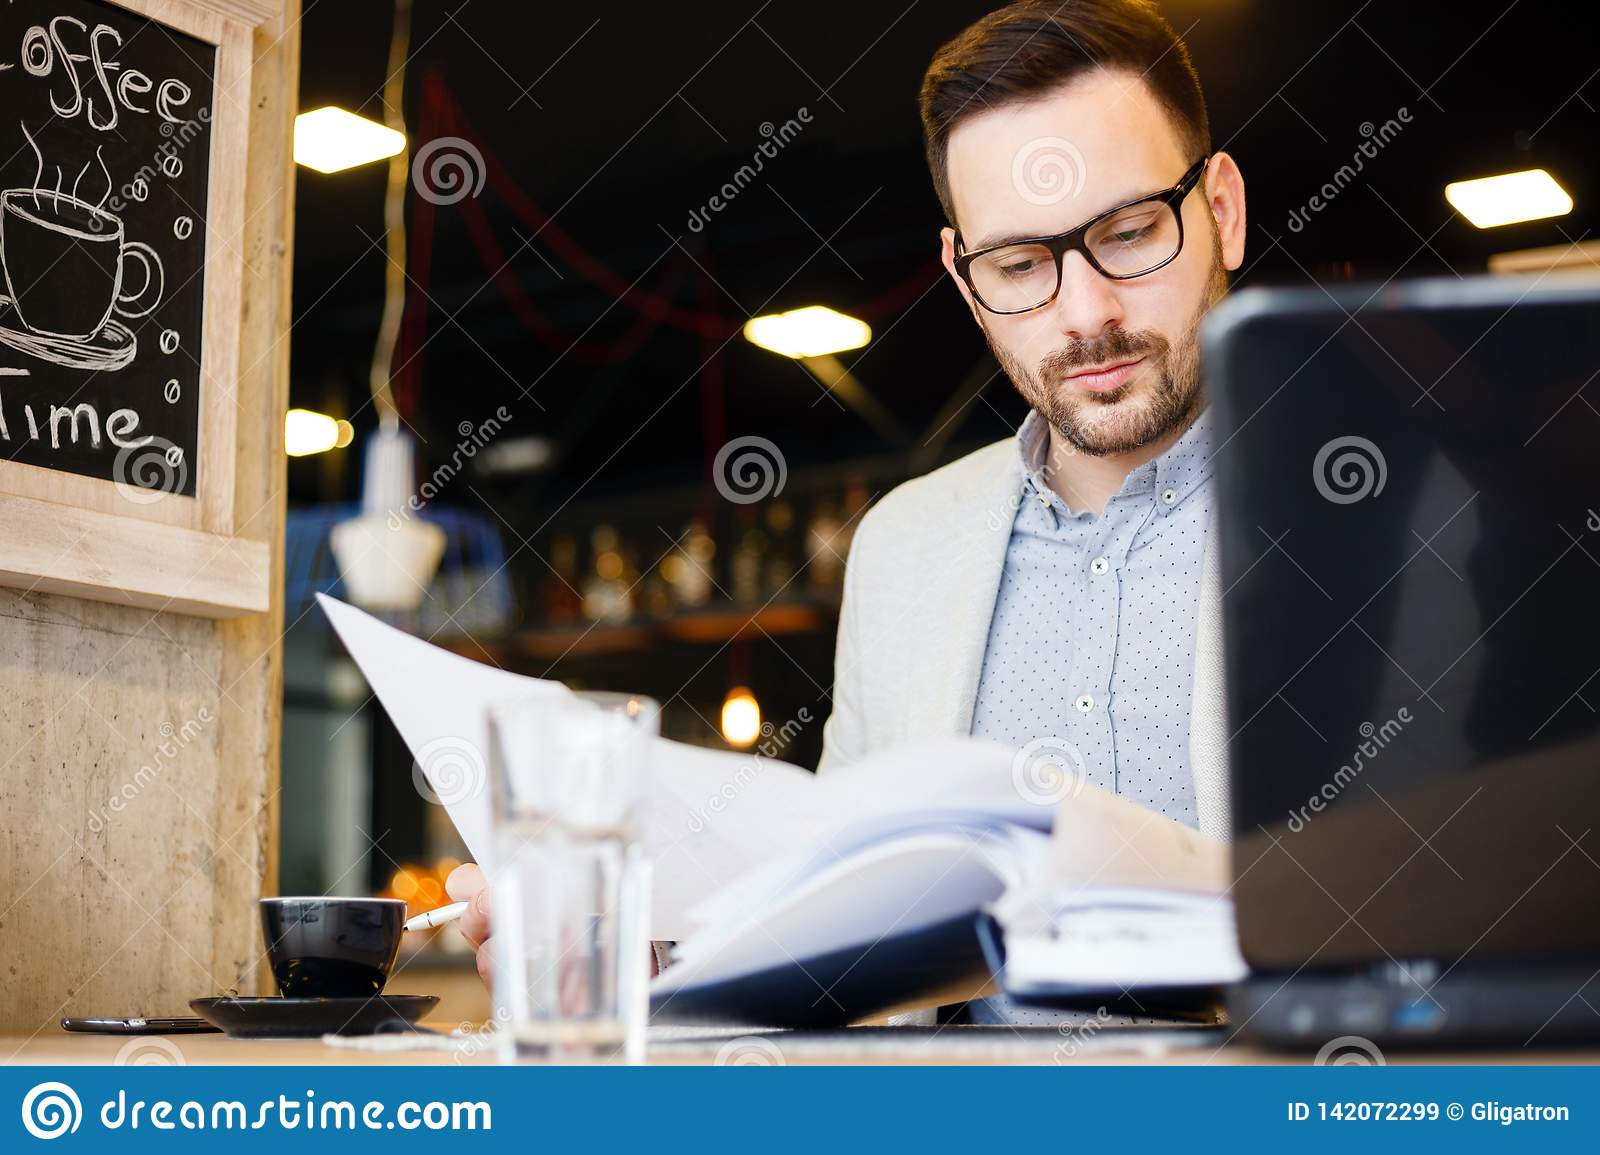 Young architect looking over building plans while working in a modern cafe